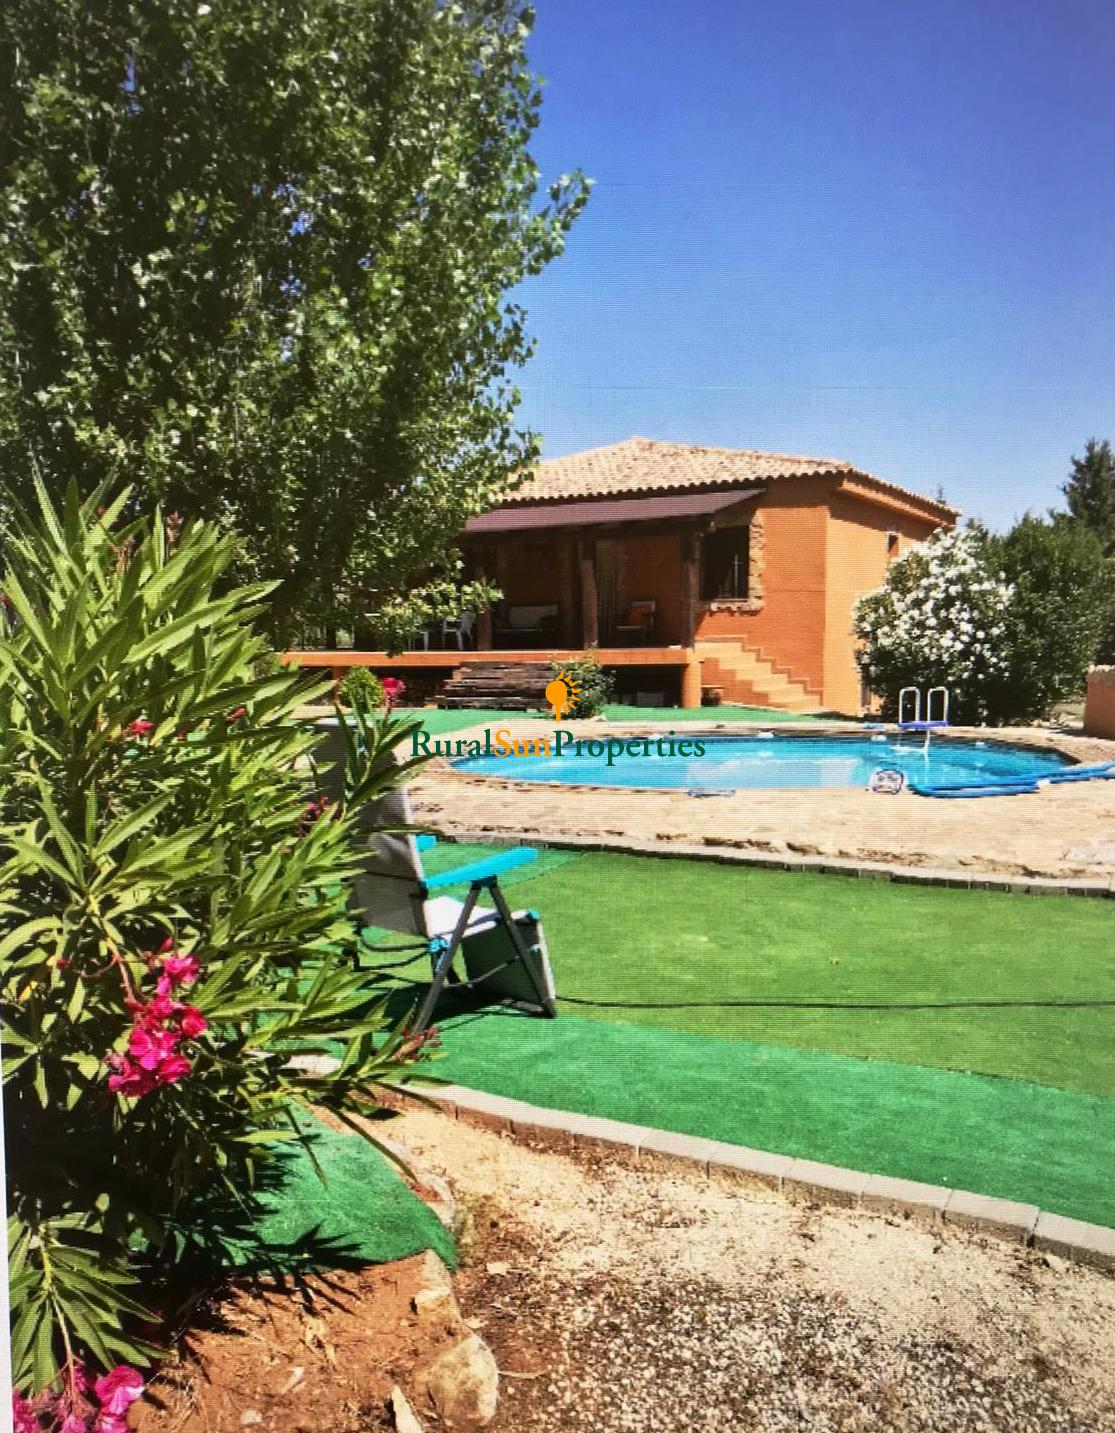 Country house for sale in Bullas with swimming pool and semi-basement for sale